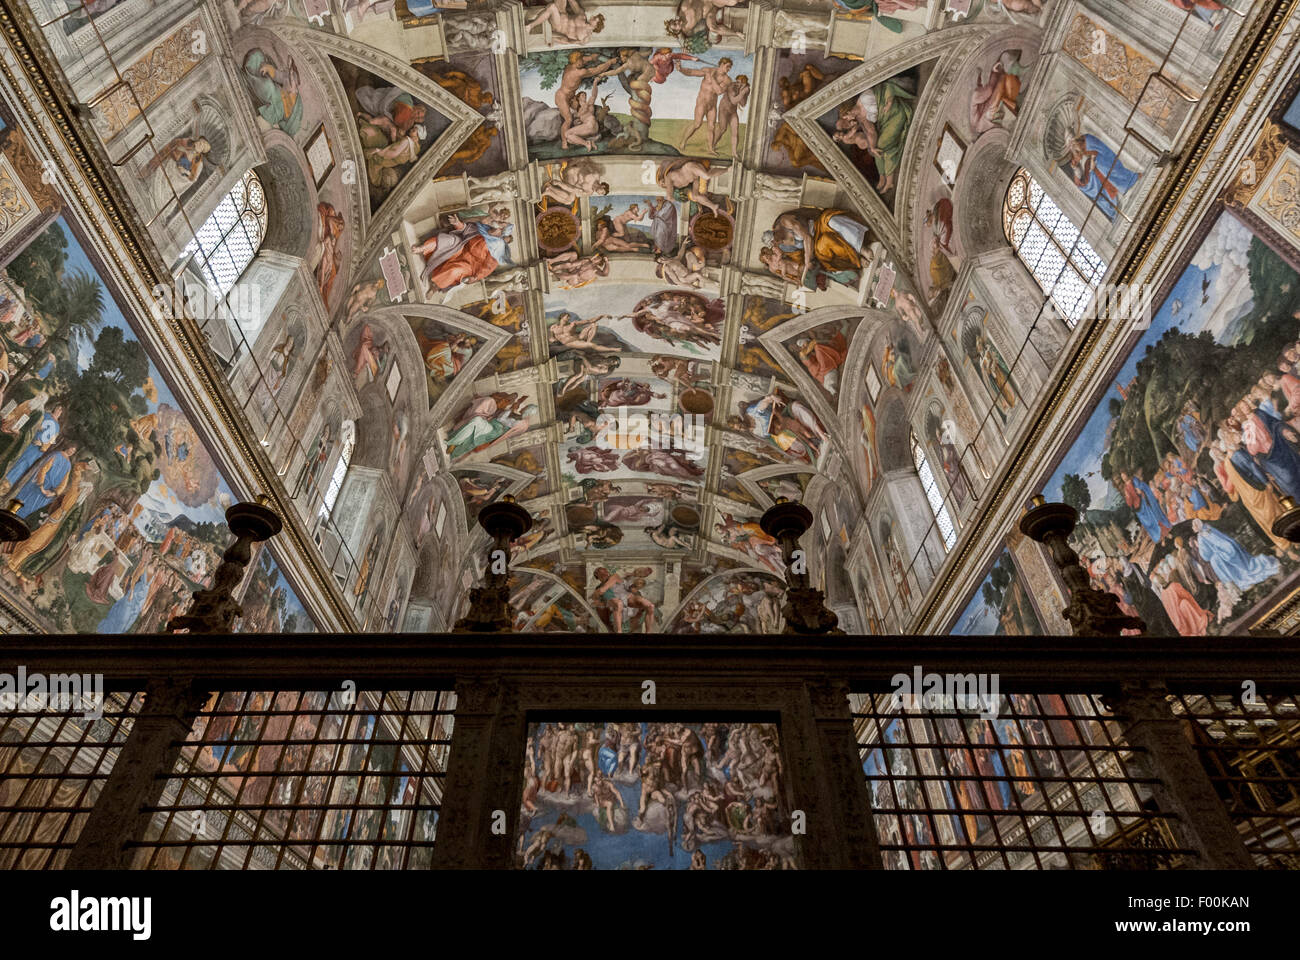 The Sistine Chapel Ceiling Painted By Michelangelo Vatican